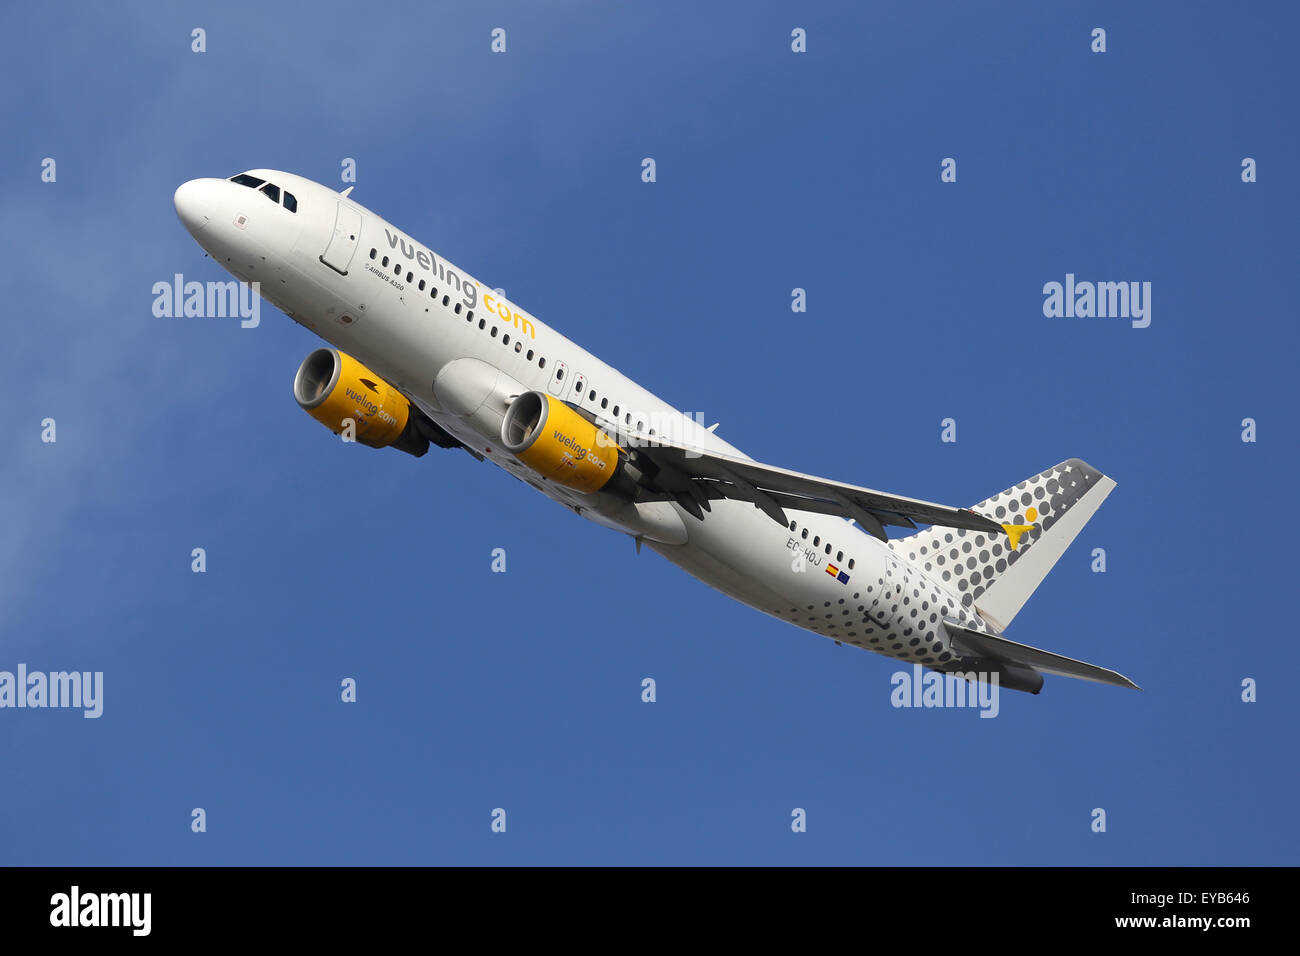 Barcelona, Spain - December 12, 2014: A Vueling Airbus A320 with the registration EC-HQJ taking off from Barcelona - Stock Image